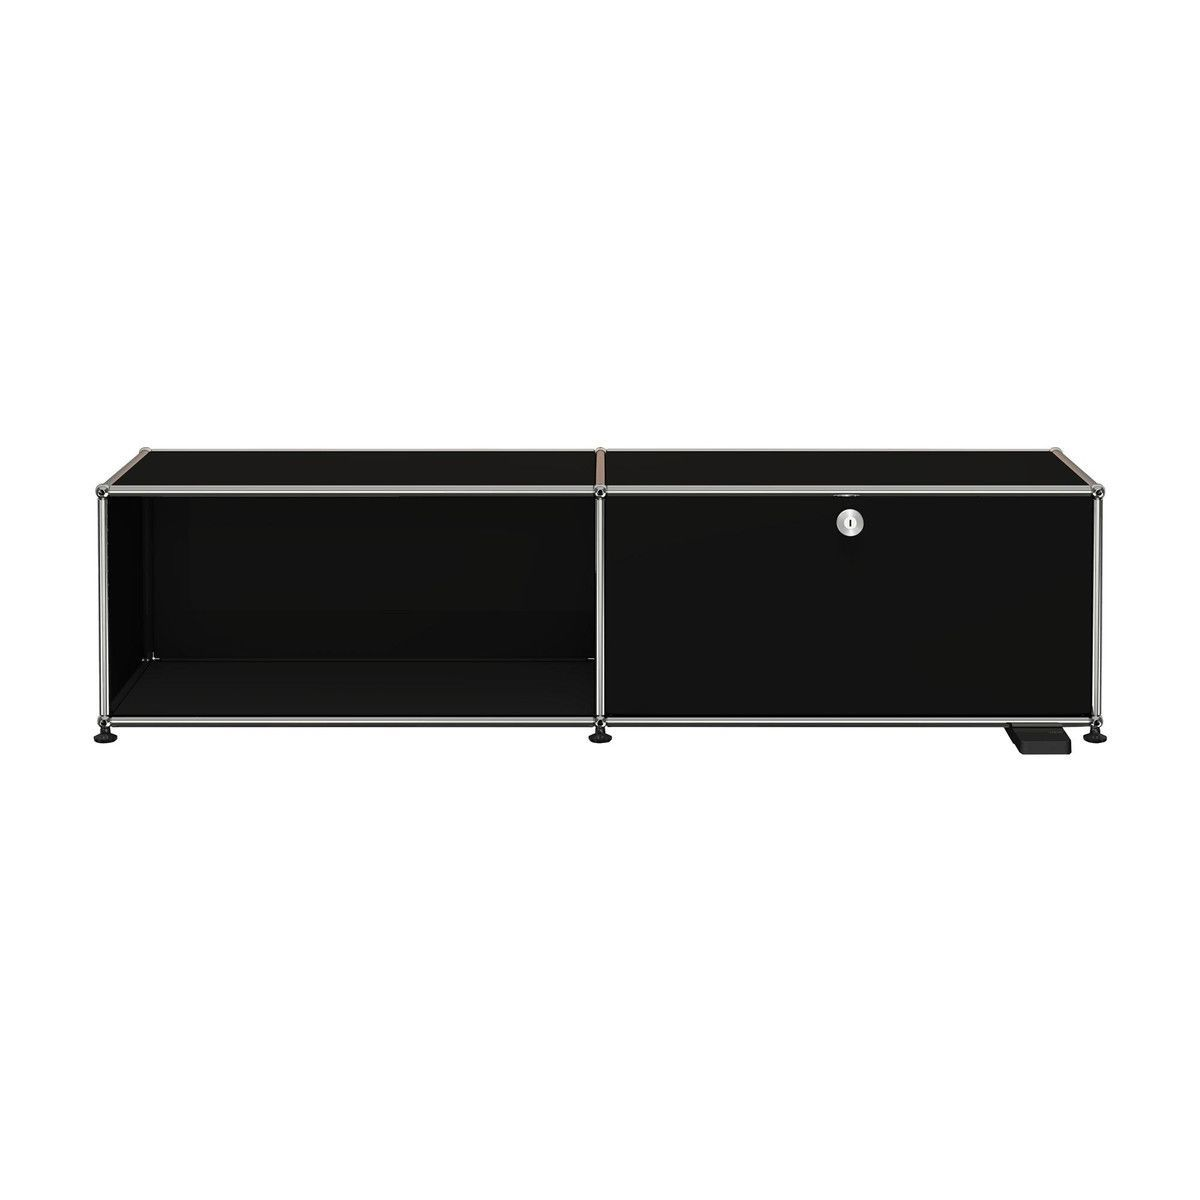 Usm Haller E Tv Hi Fi Furniture With Light Usm Haller  # Meuble Tv Usm Haller